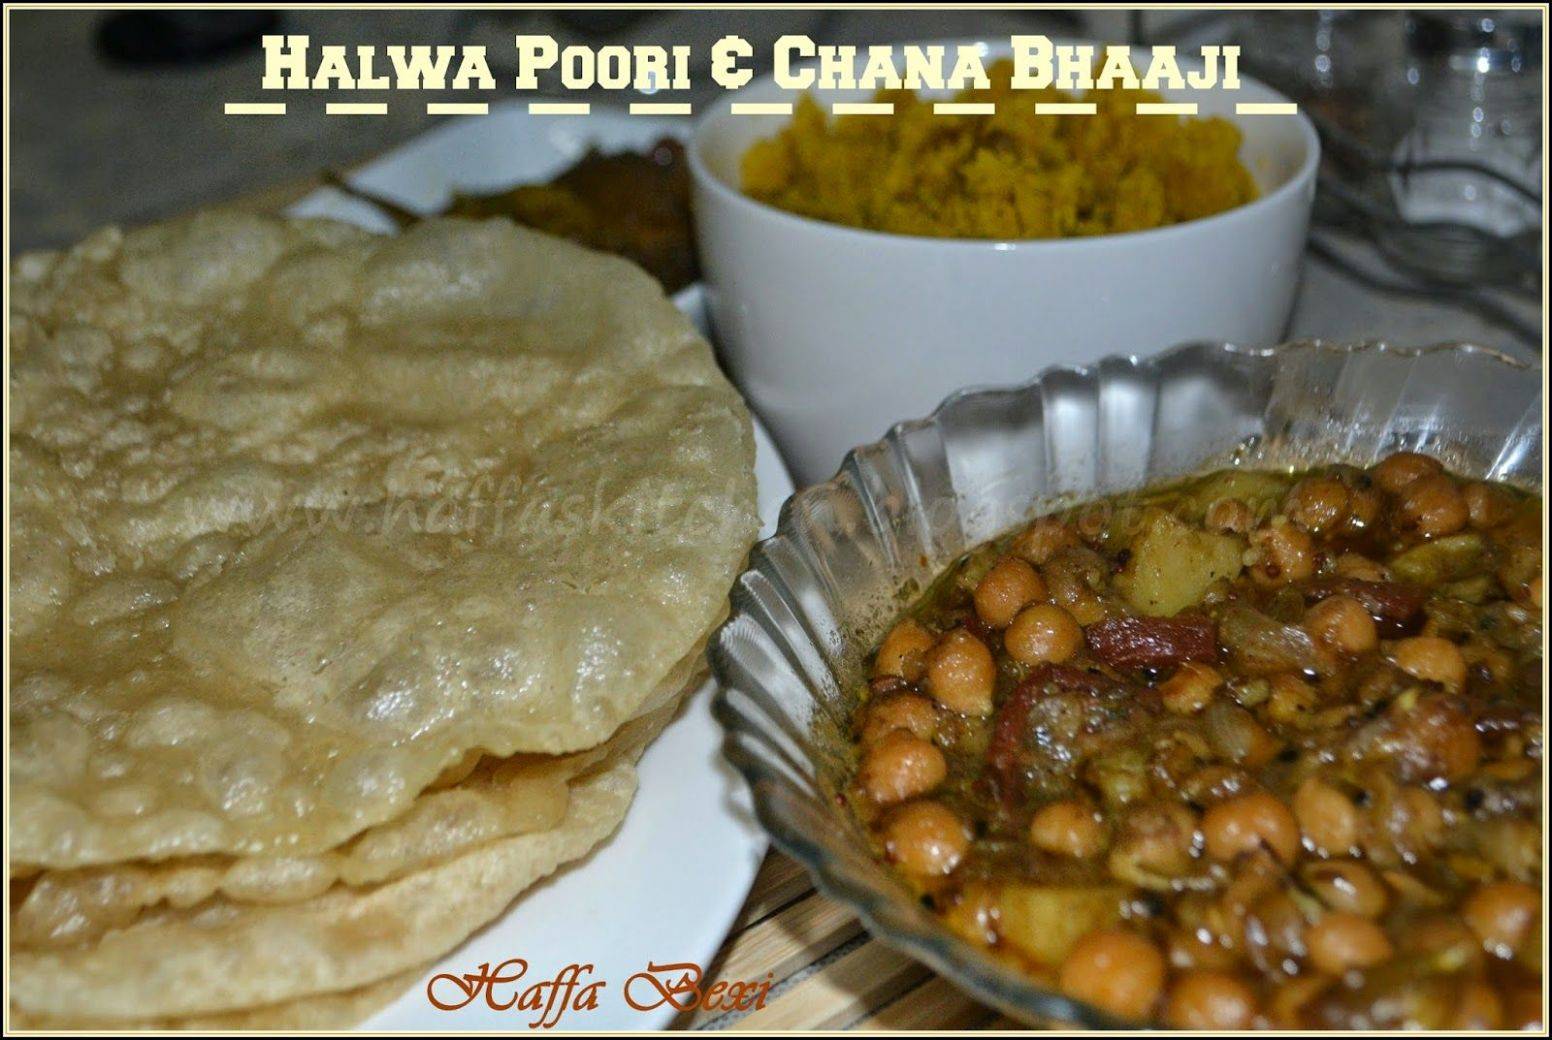 Halwa Poori & Chanay Bhaaji | Indian breakfast, Food recipes ...